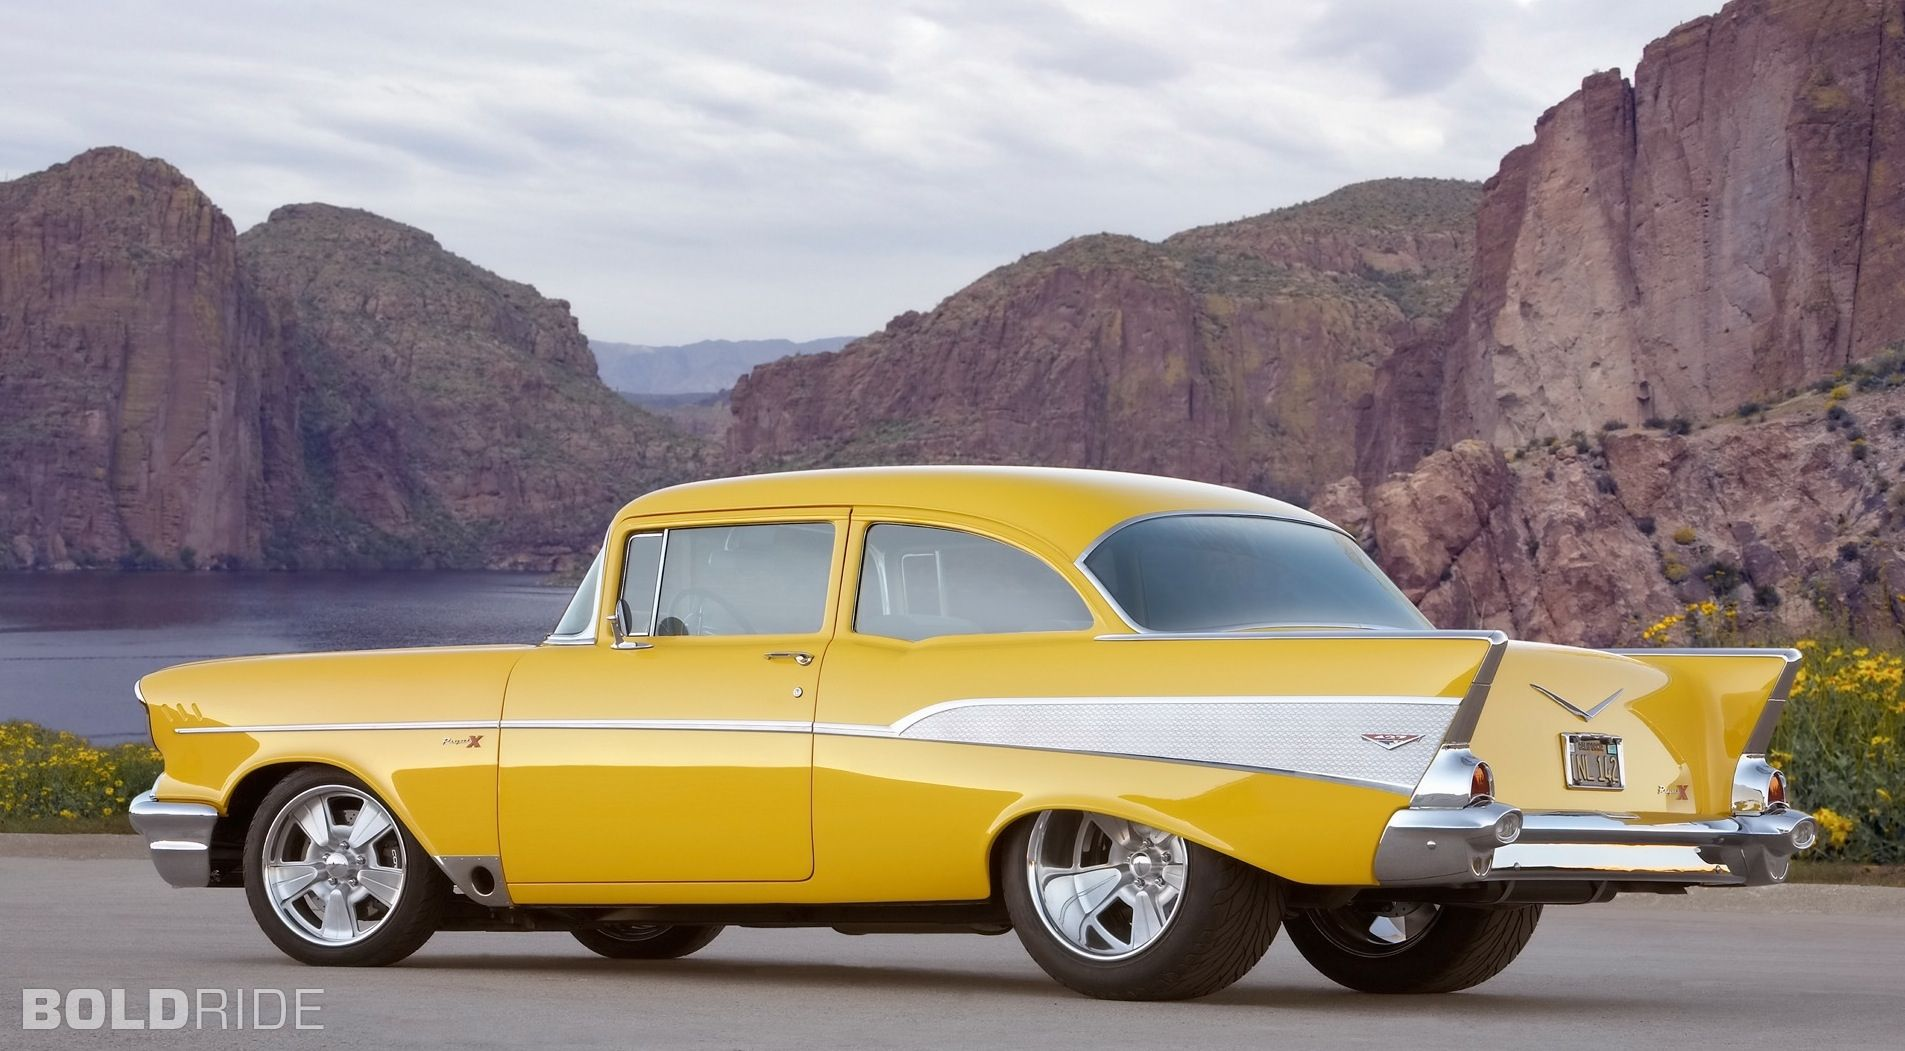 2007 Chevrolet Bel Air Project X Gallery 211351 Classic Cars